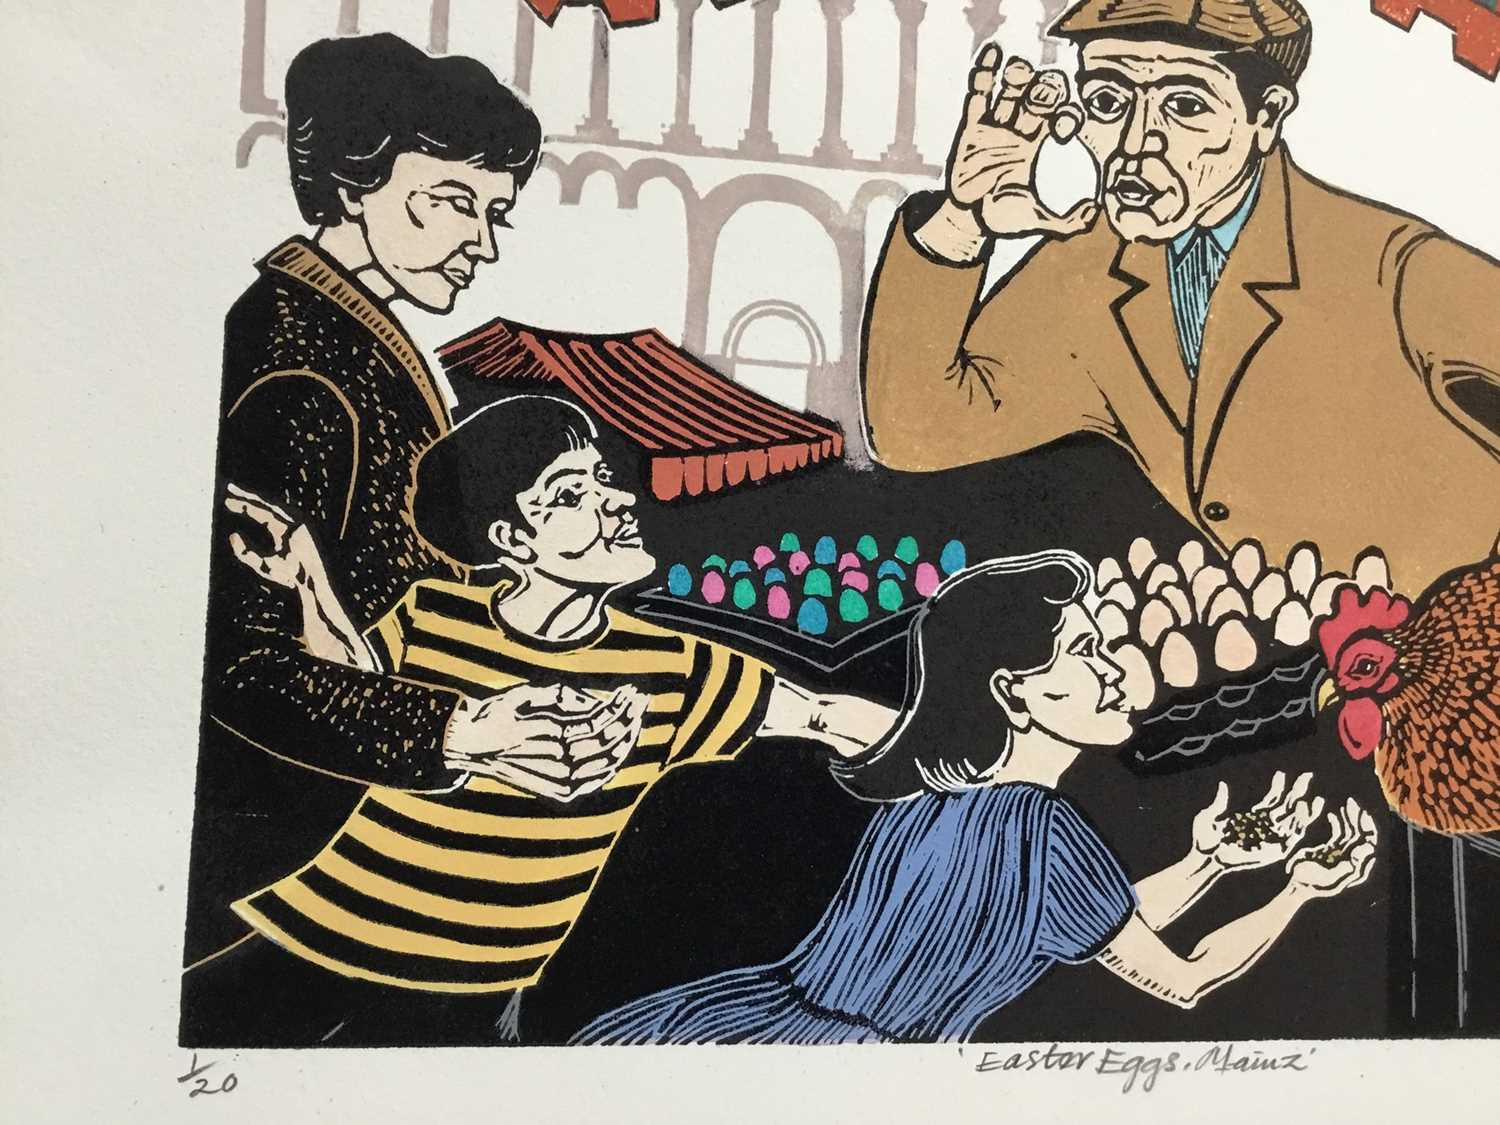 Penny Berry Paterson (1941-2021) colour linocut print, Easter eggs, Mainz, signed and numbered 1/20, - Image 3 of 3